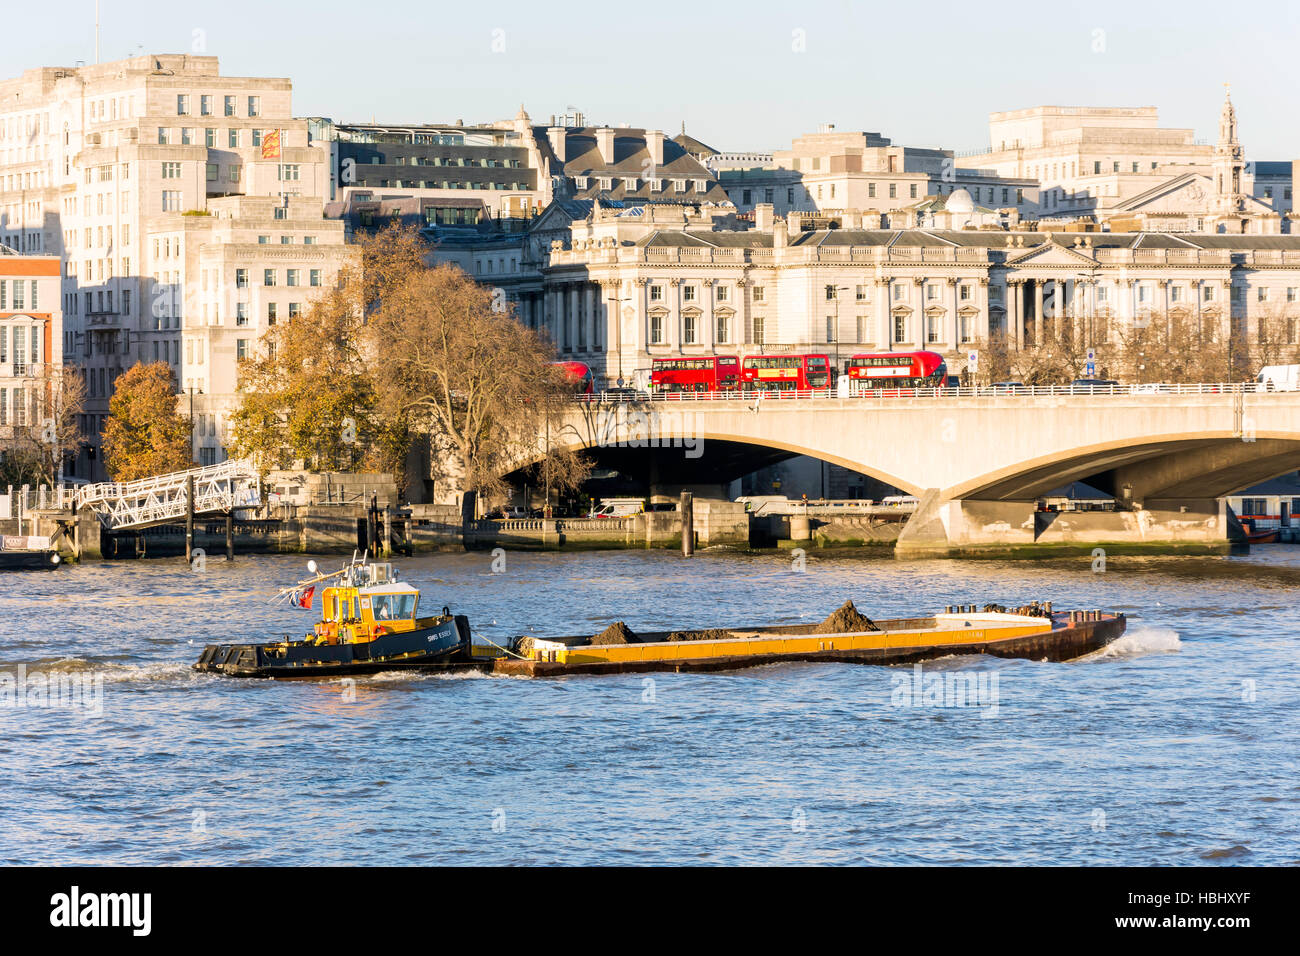 Tug boat steering barge on River Thames, South Bank, London Borough of Lambeth, Greater London, England, United - Stock Image